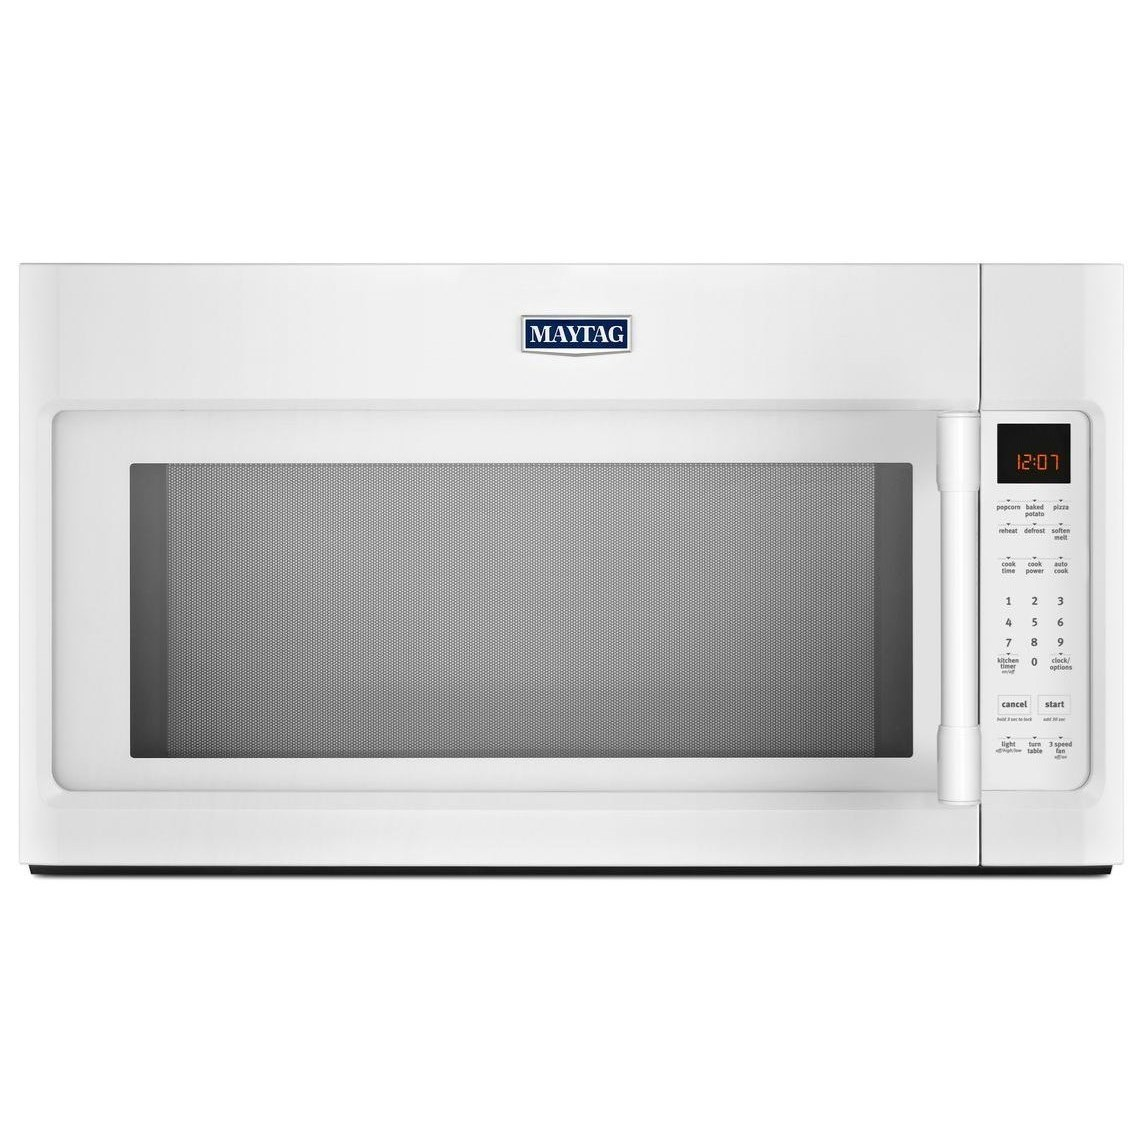 Maytag Mmv4205fw Over The Range Microwave With Sensor